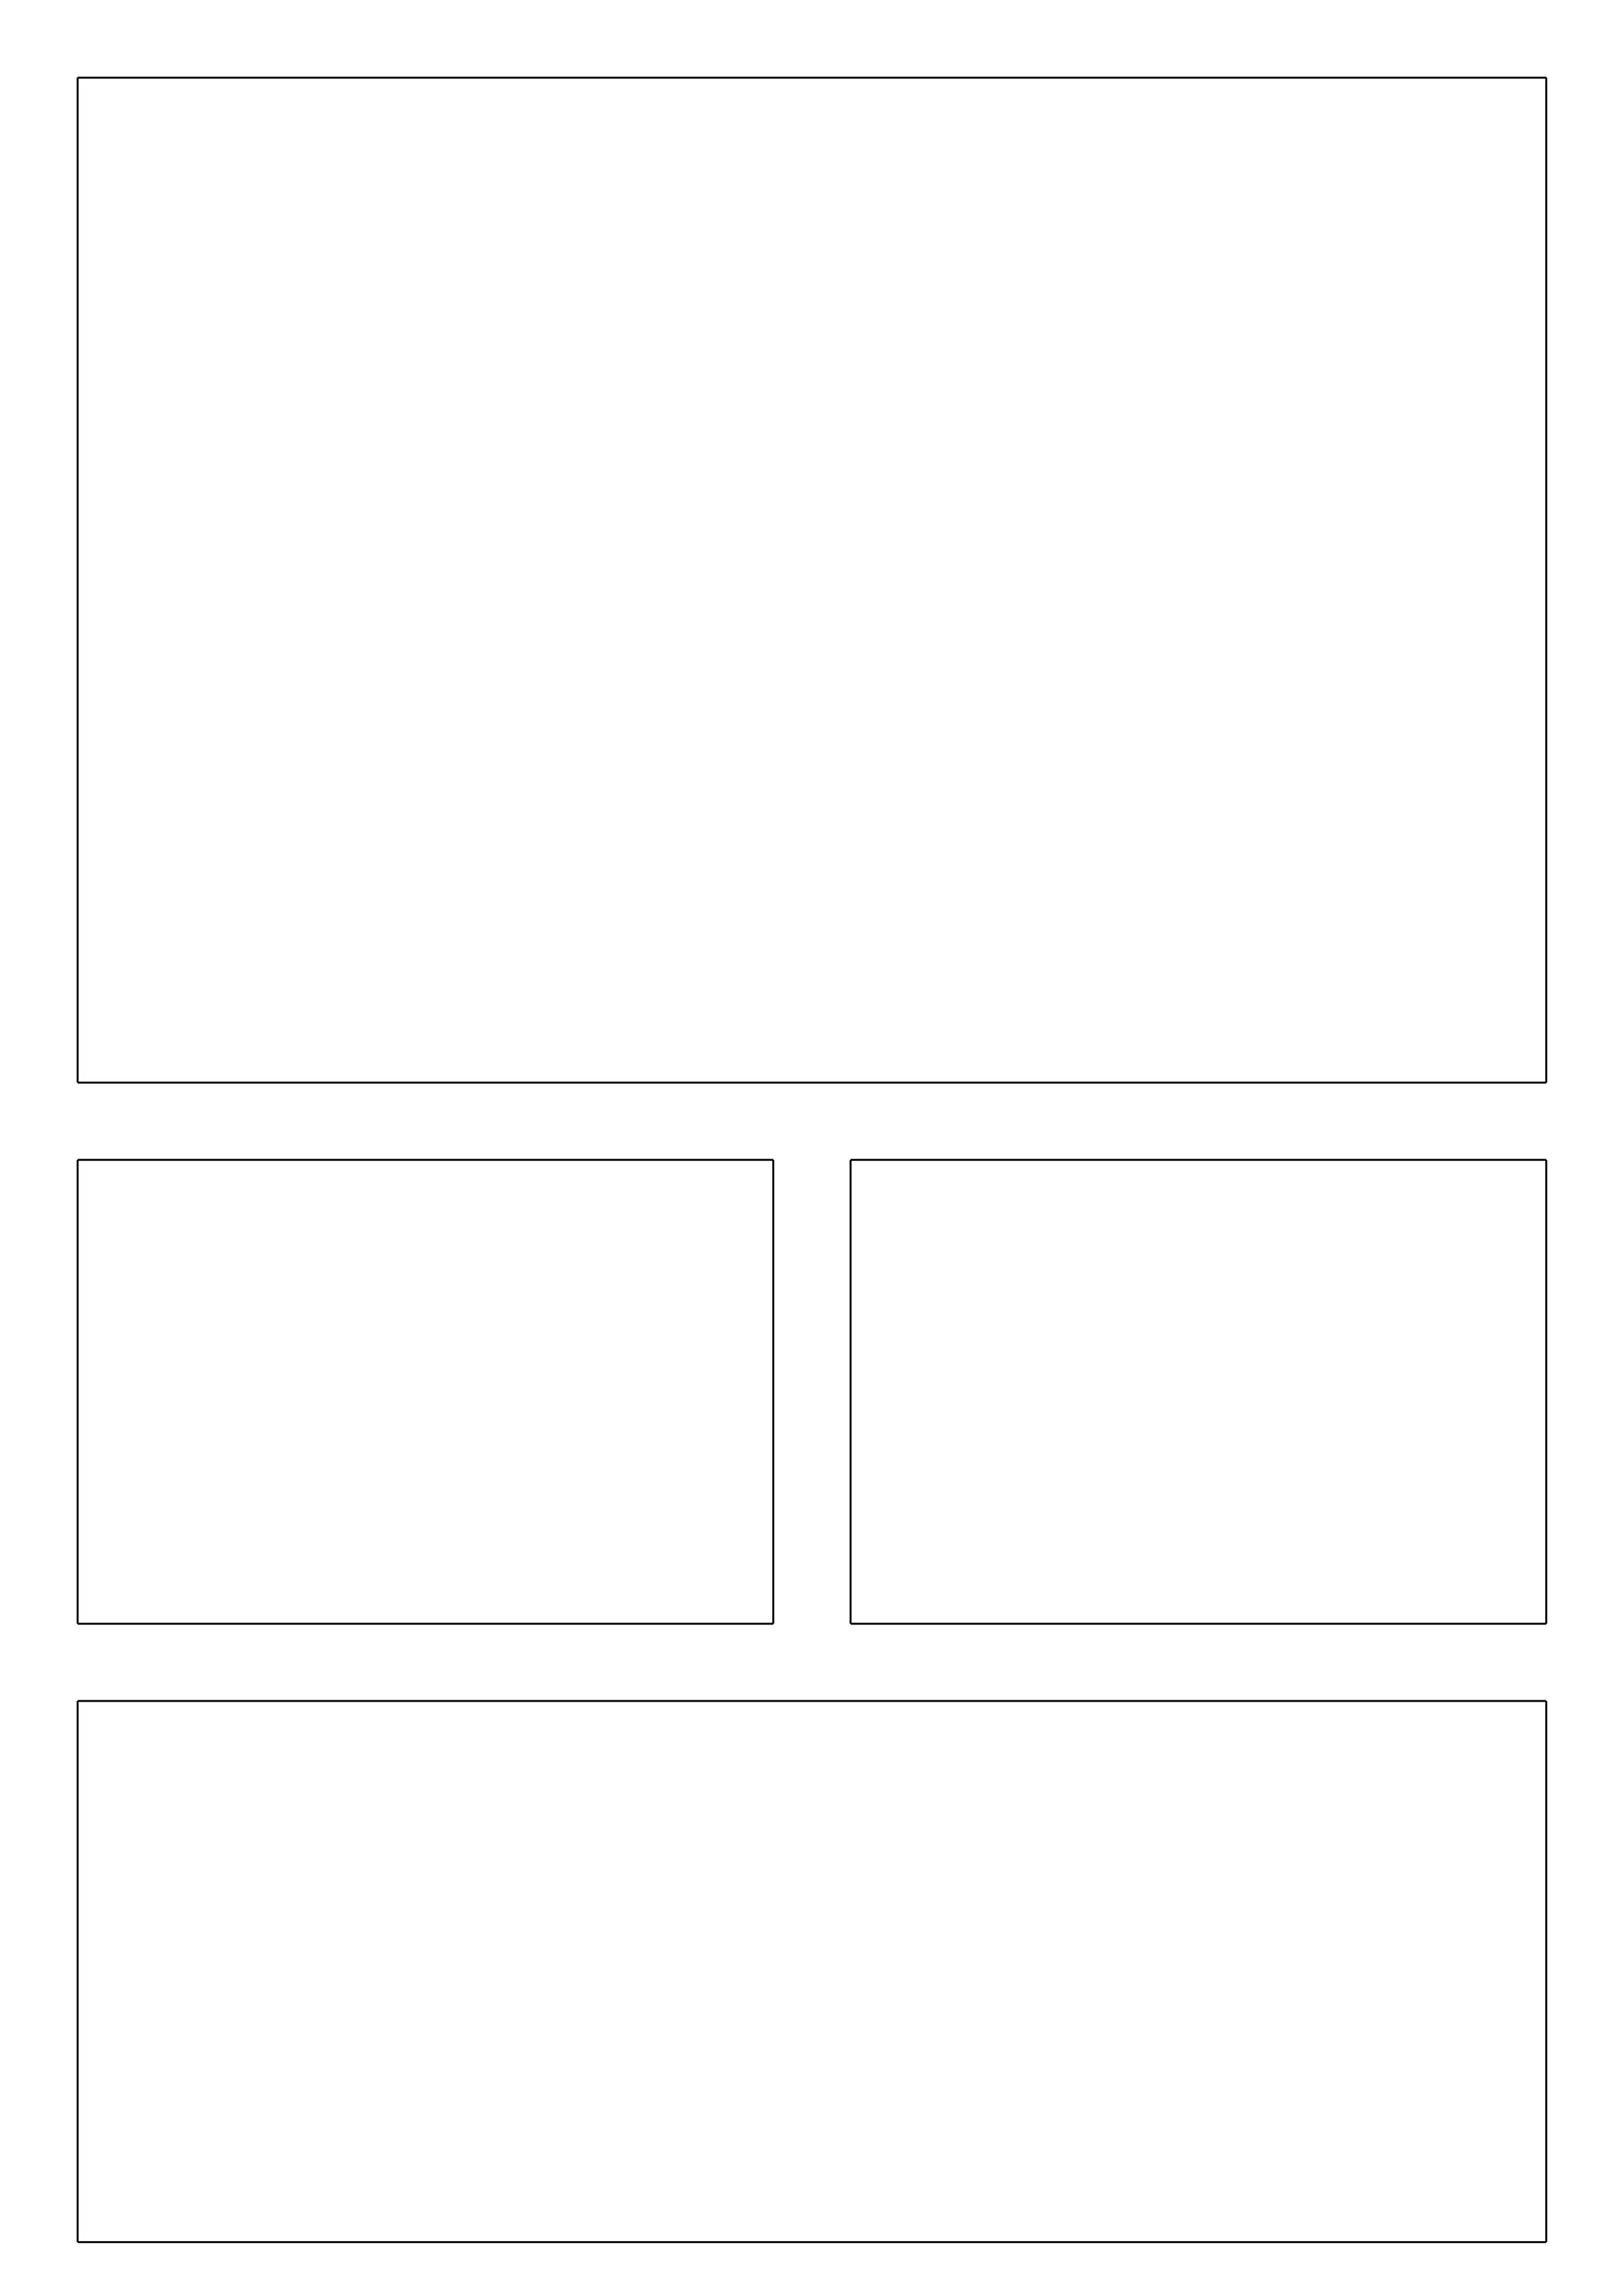 comic page templates by charmedprince on deviantart